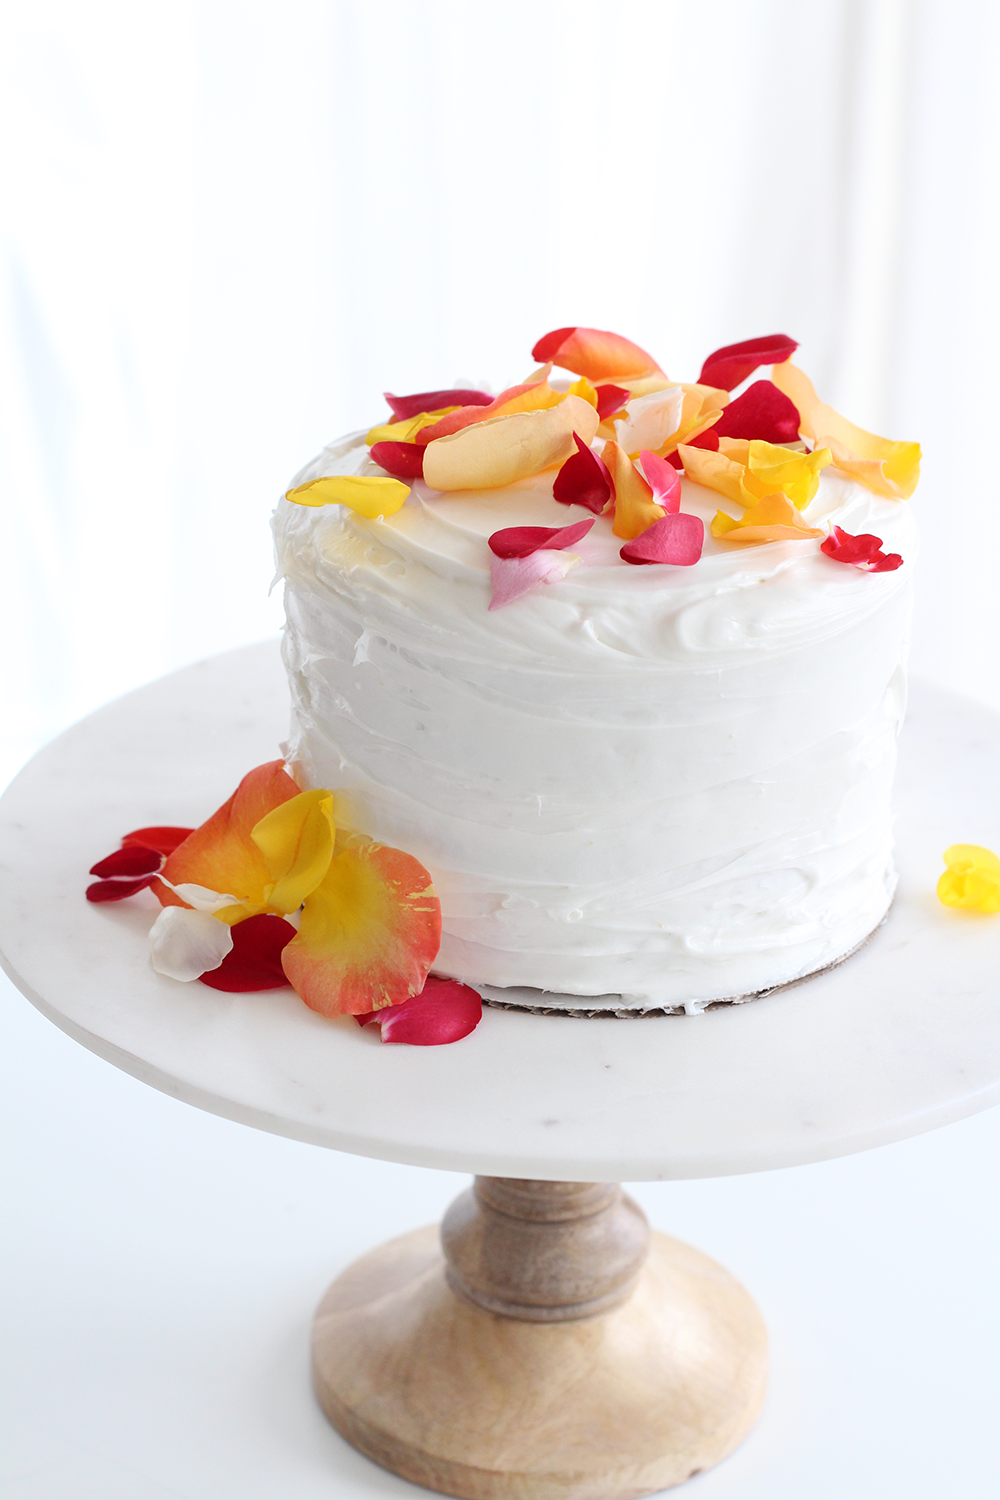 Edible rose petals make a gorgeous cake topper. Such a simple way to make a plain cake look fancy and special